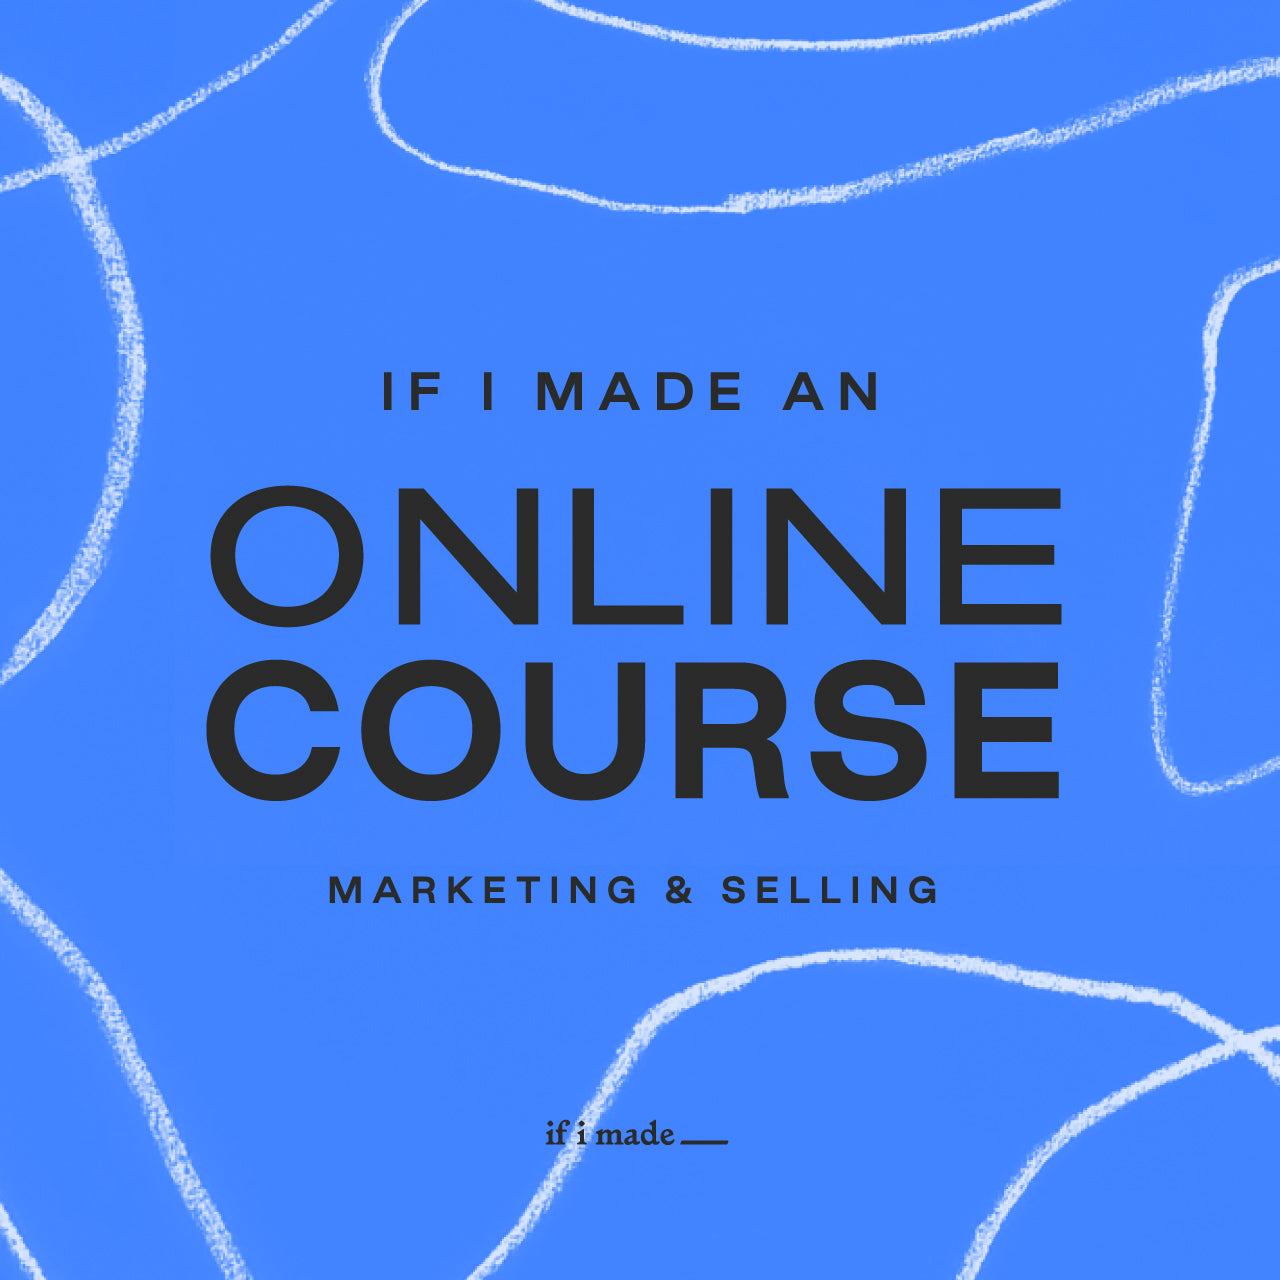 Sale Payment Plan: If I Made An Online Course: Marketing & Selling an Online Course - 8 Payments of $99